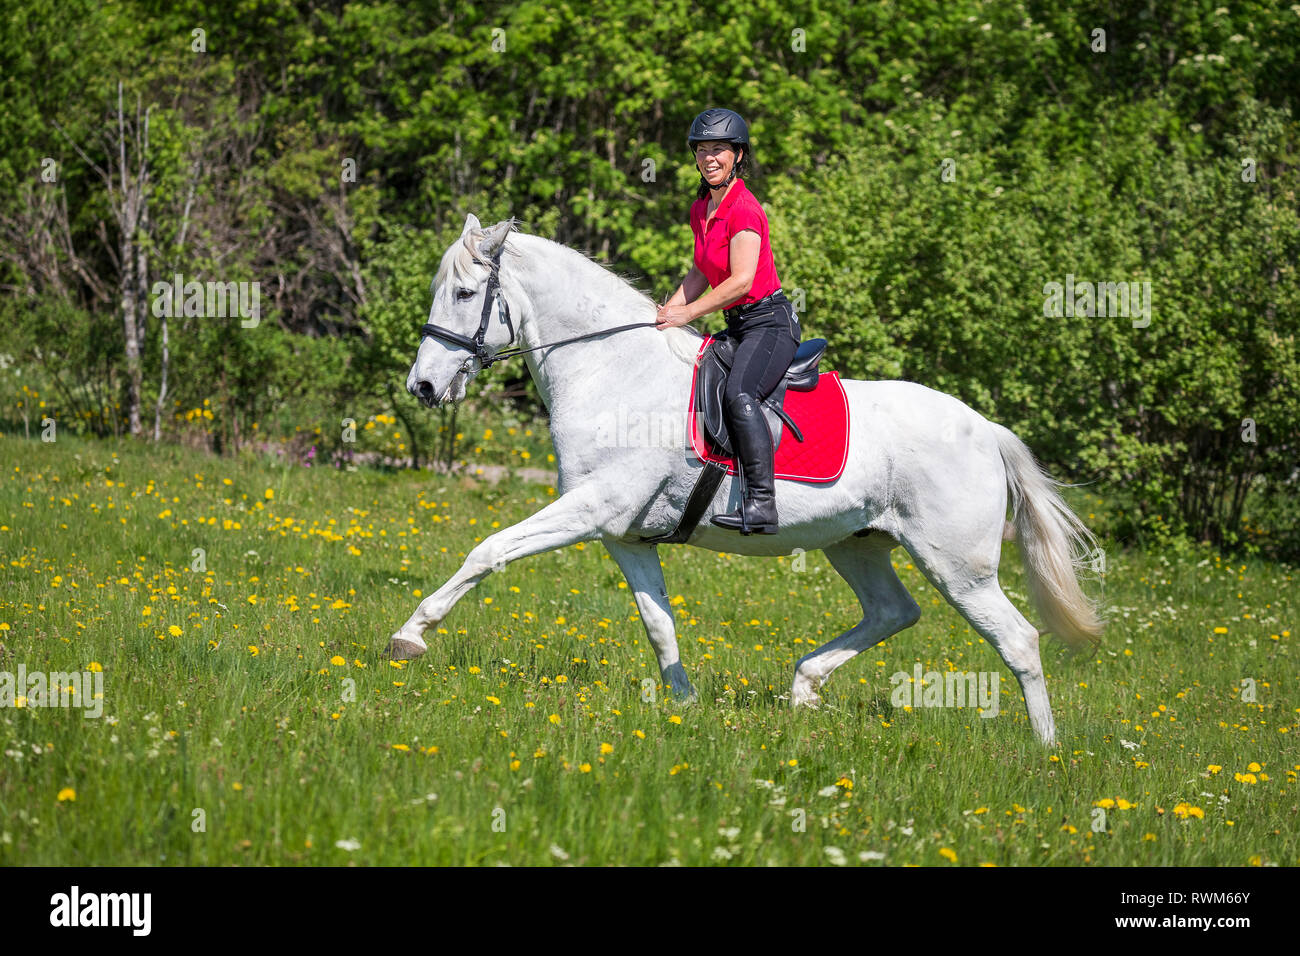 Lusitano. Rider on a old gray gelding trotting on a meadow. Germany - Stock Image